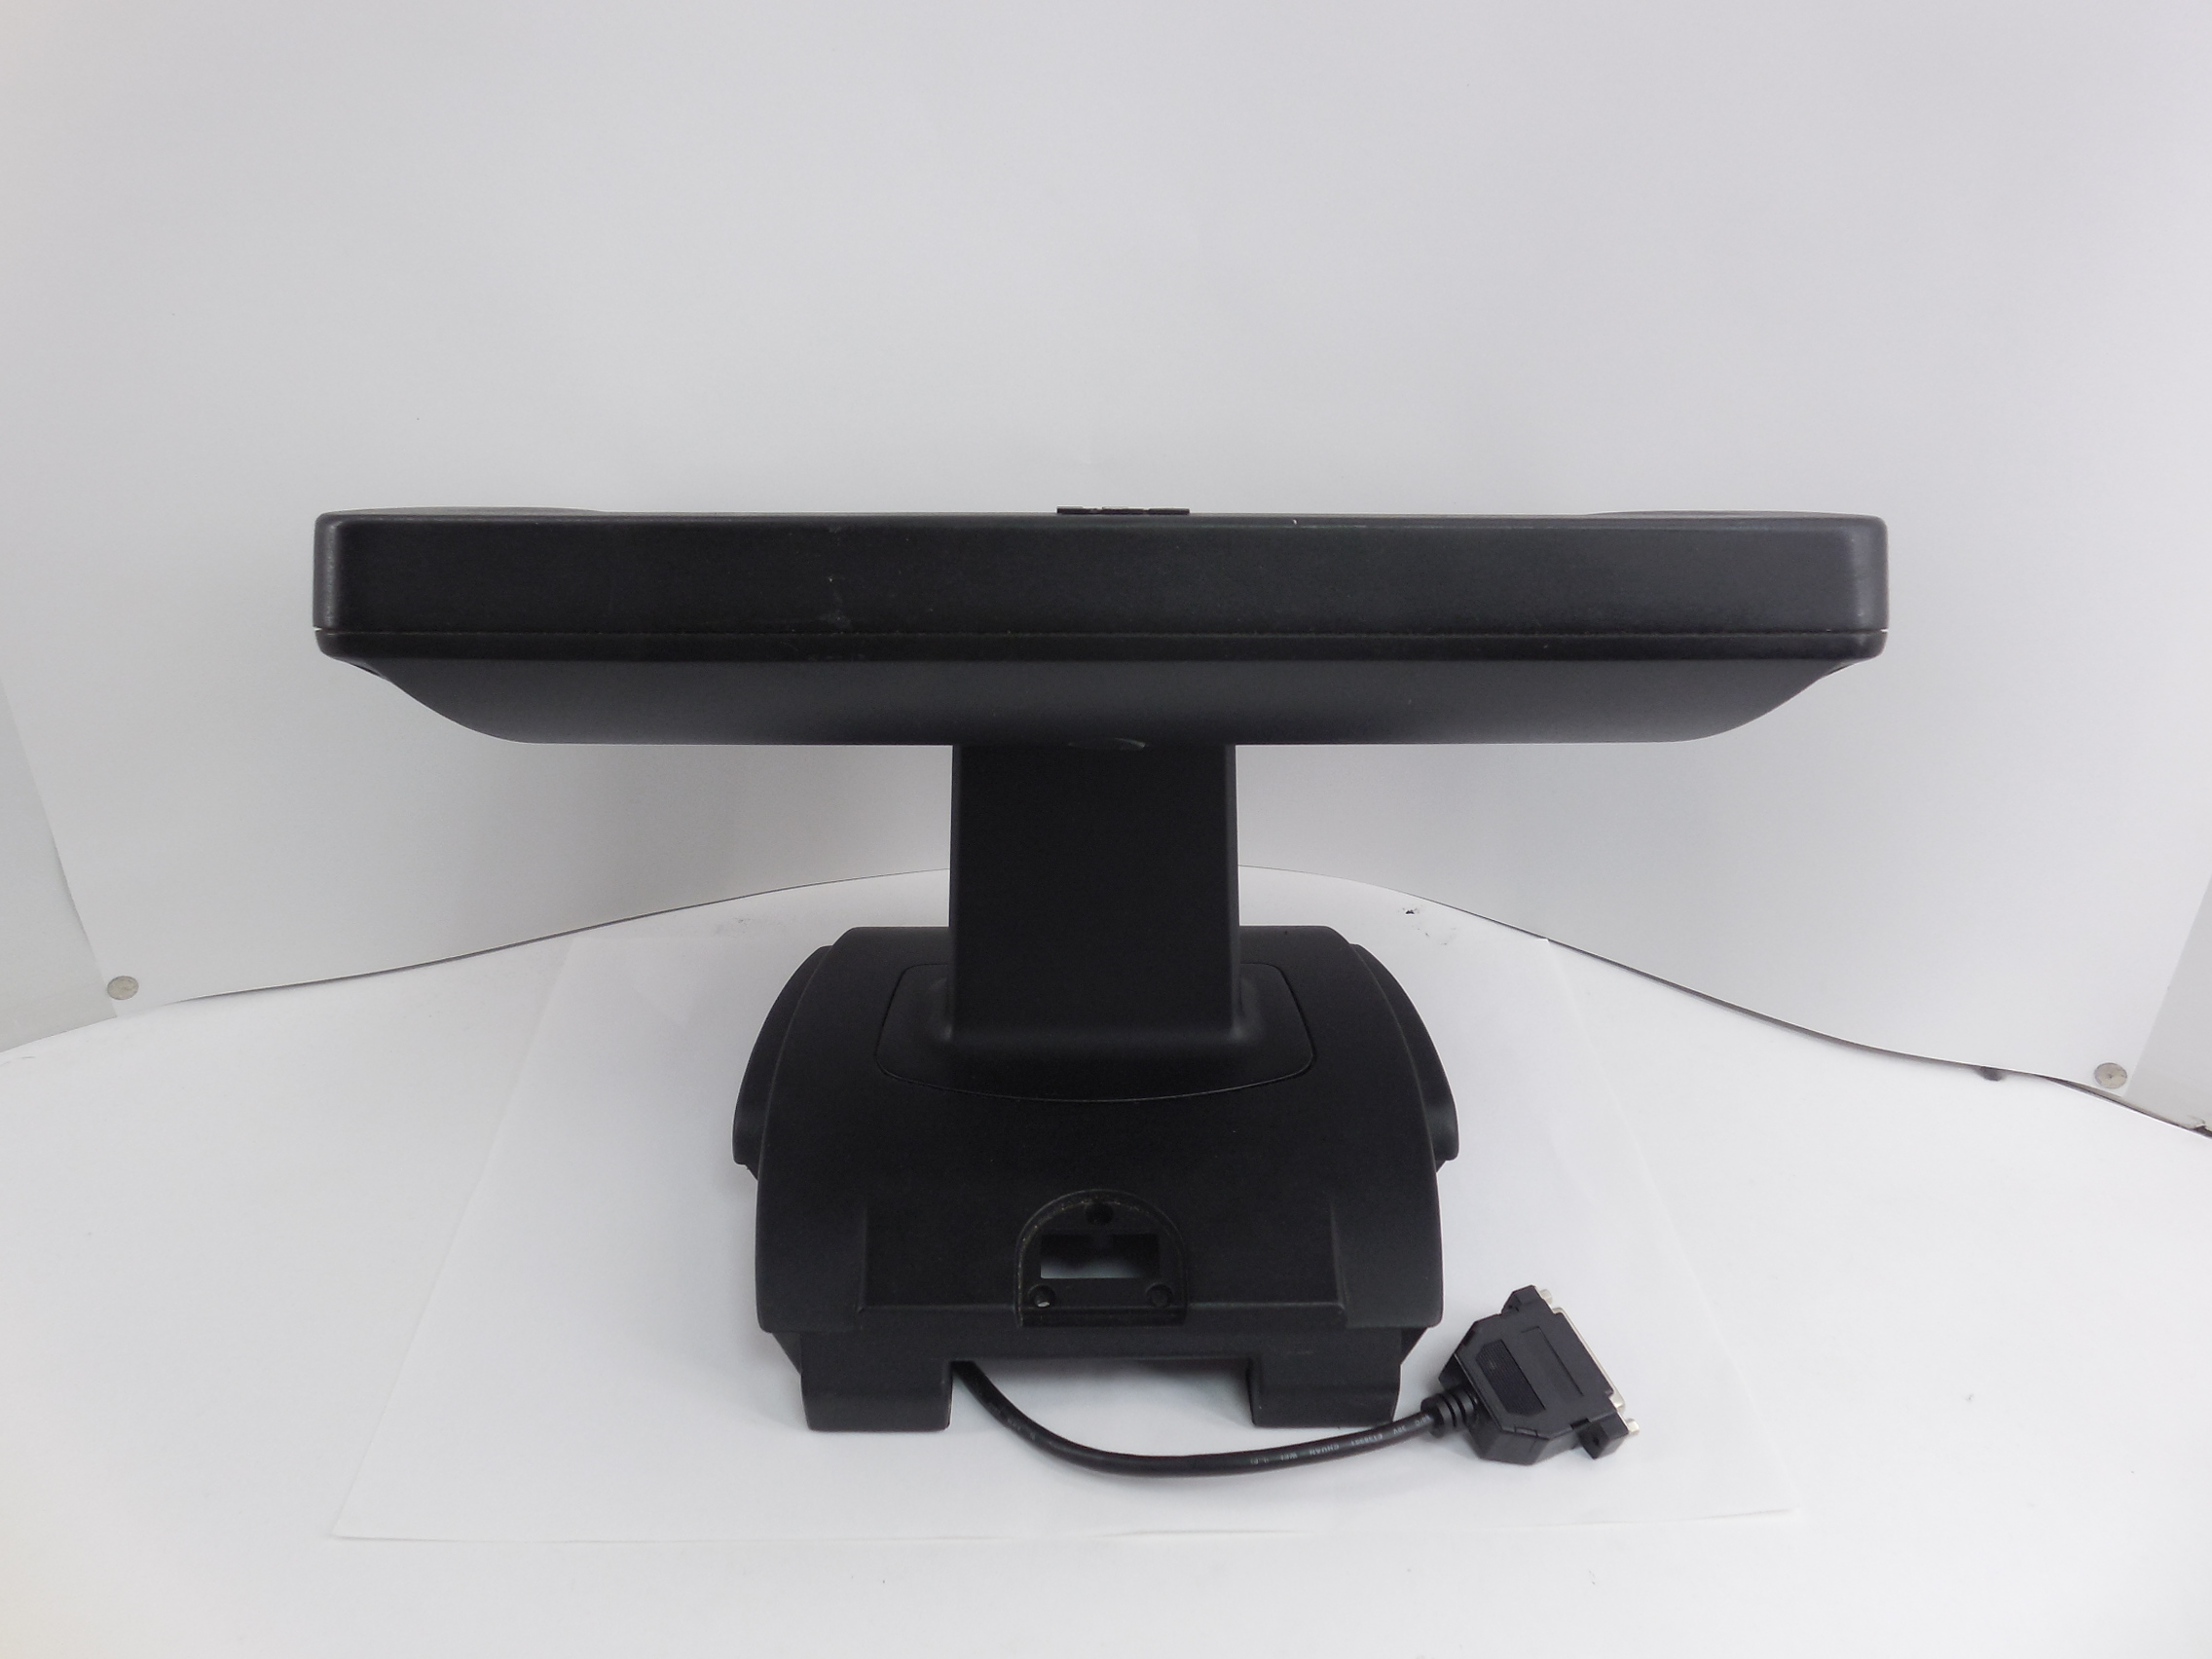 POS терминал Glaive Smart Terminal RT-565 - Pic n 266410